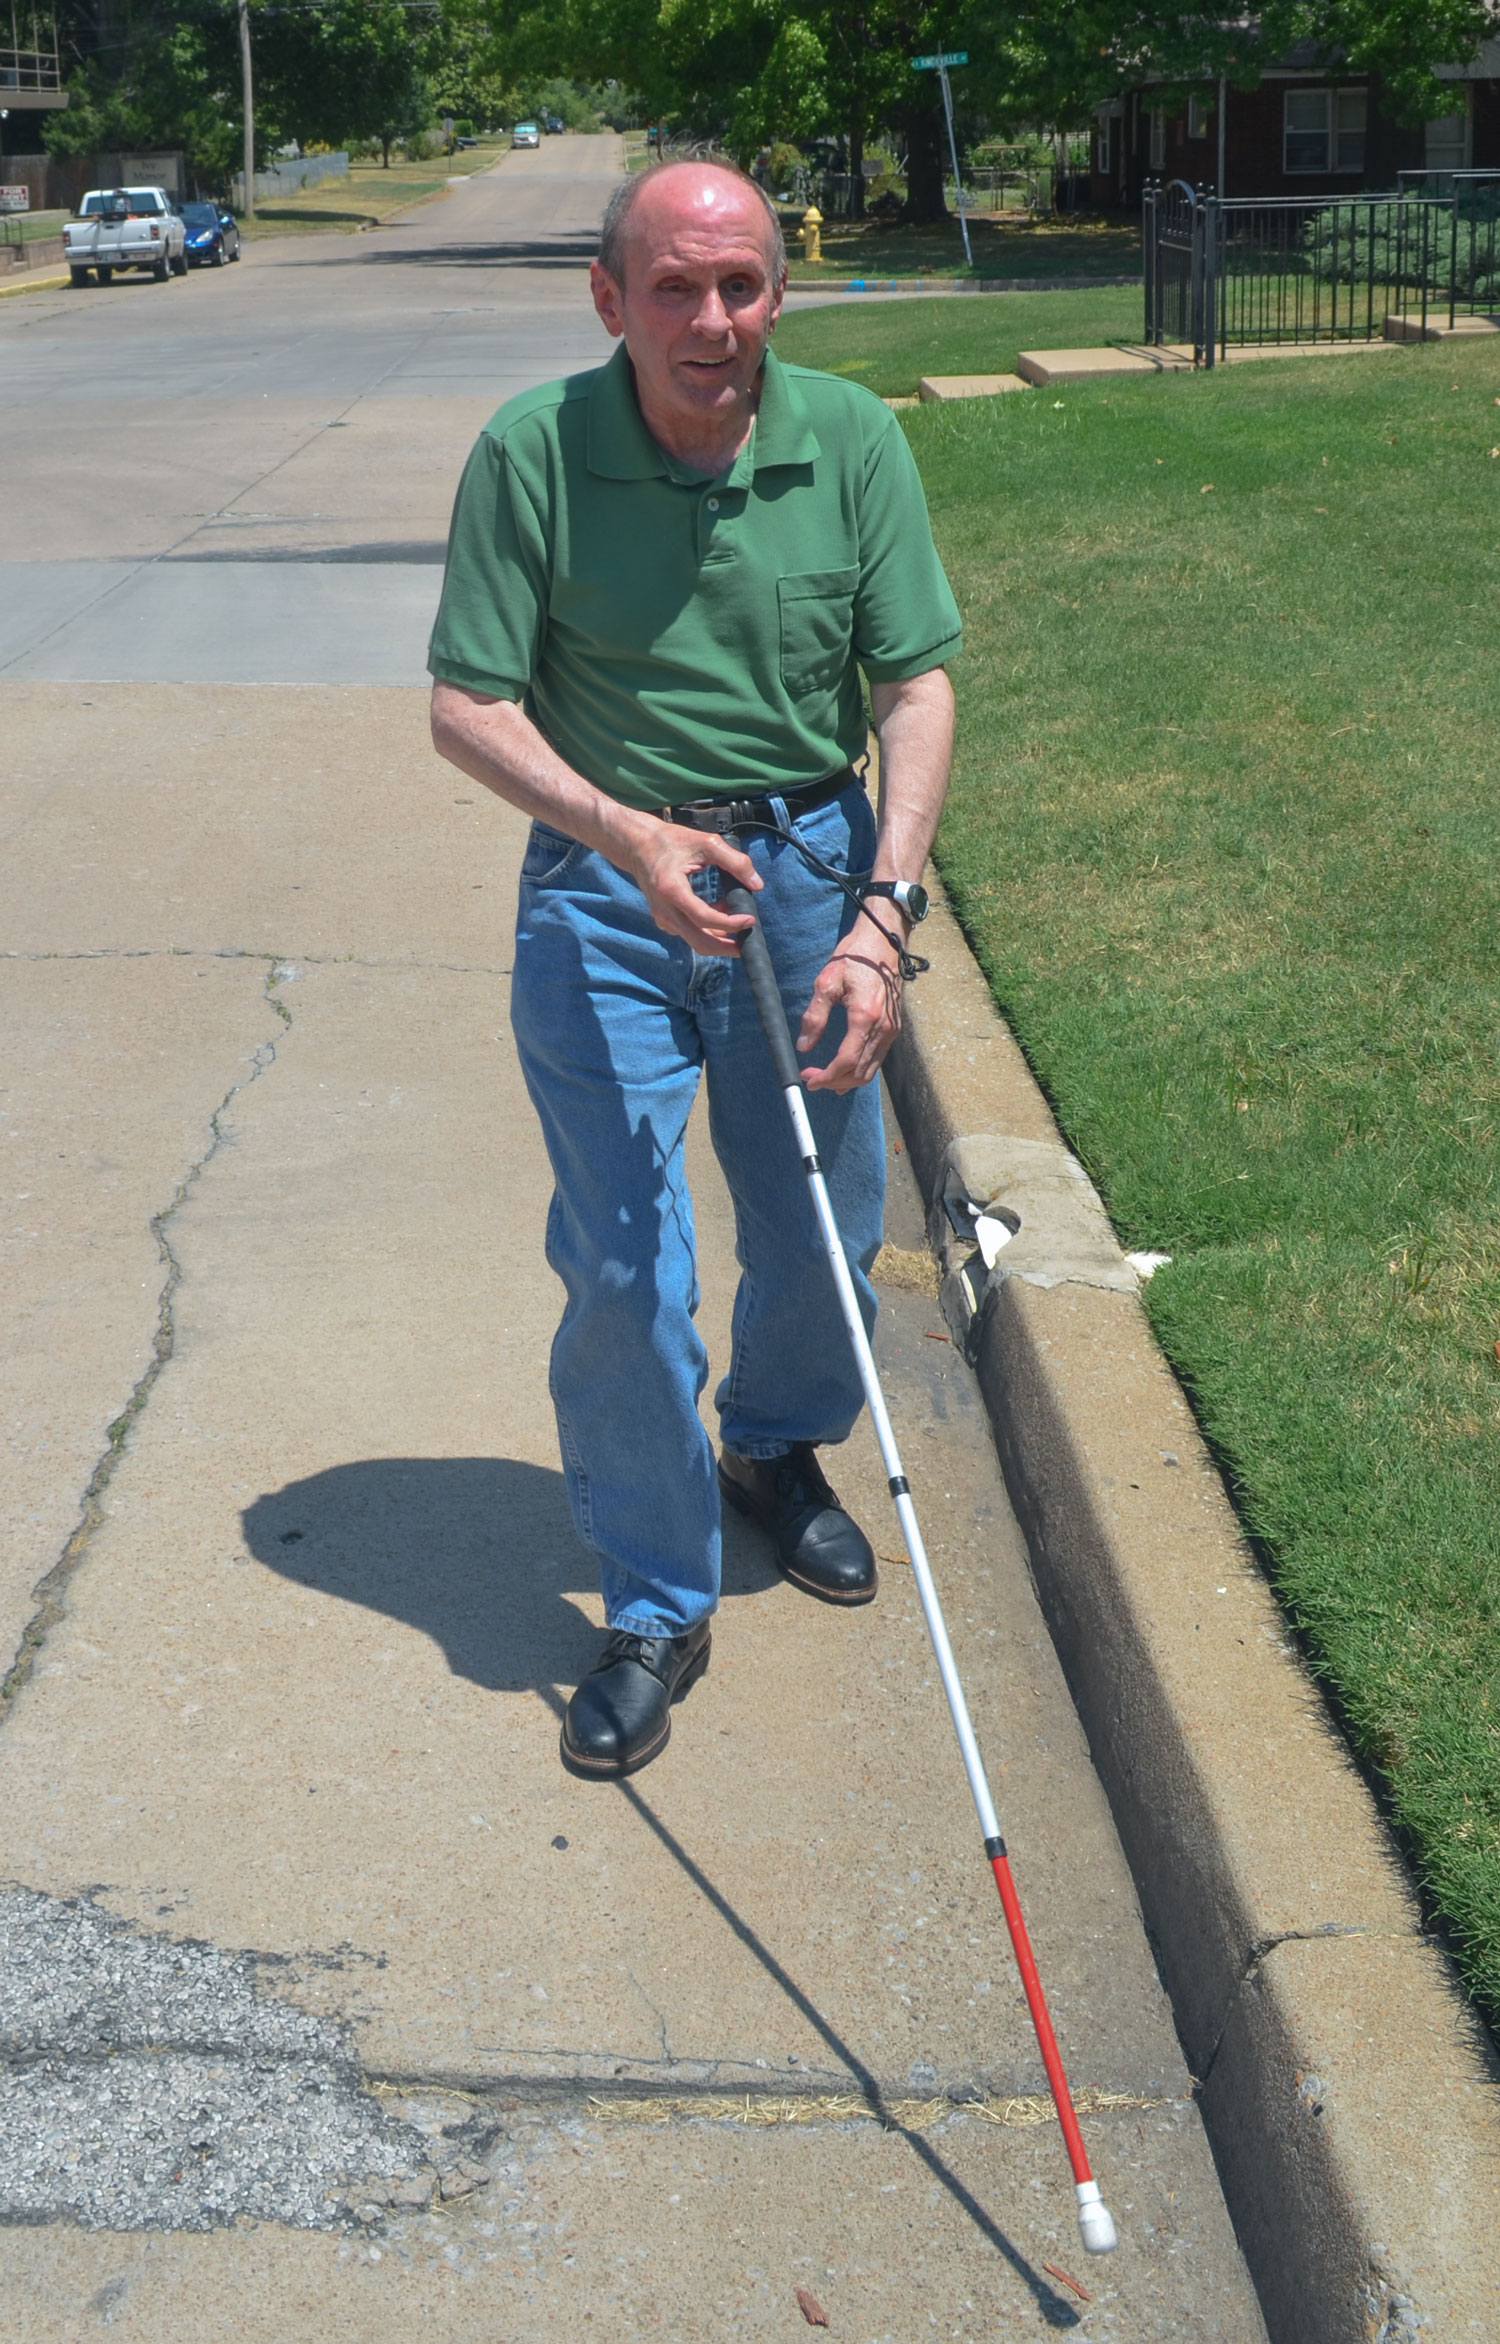 Hill walking up the street using a white cane.